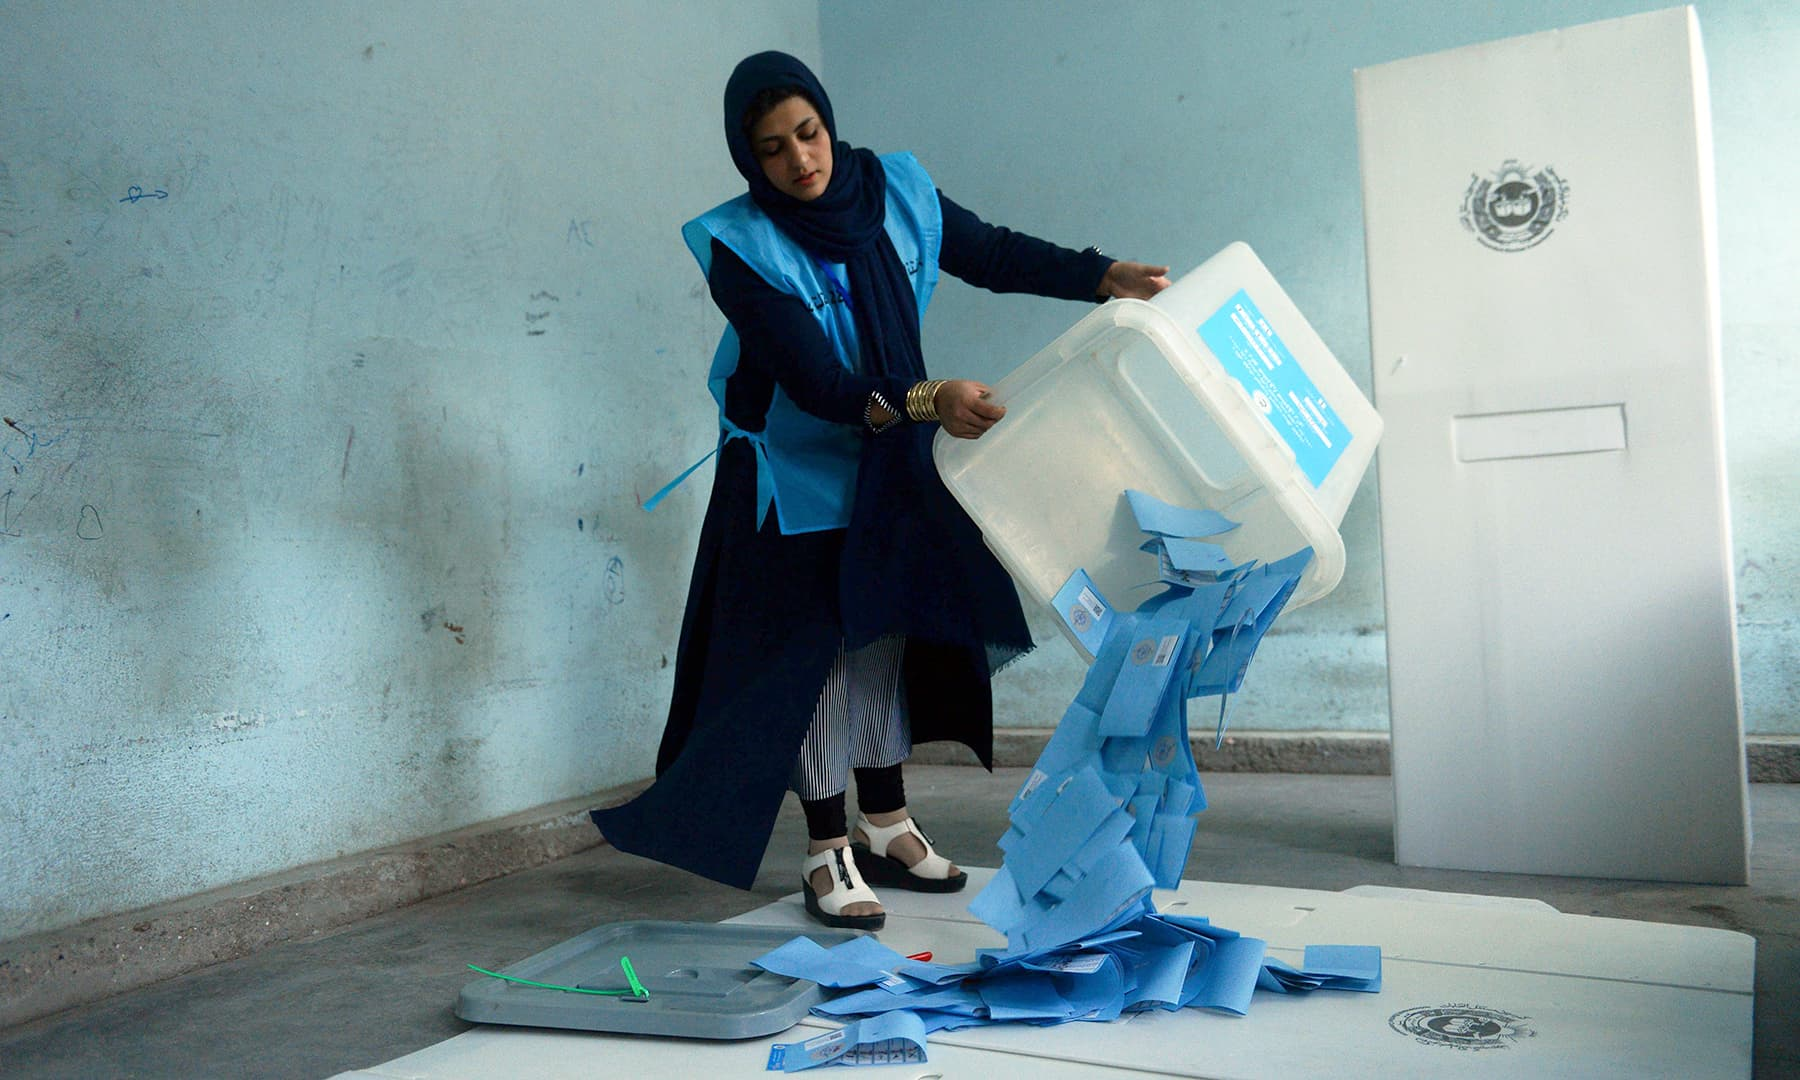 An Afghan Independent Election Commission (IEC) official empties a ballot box to count ballot papers after polling stations closed, in Herat. — AFP